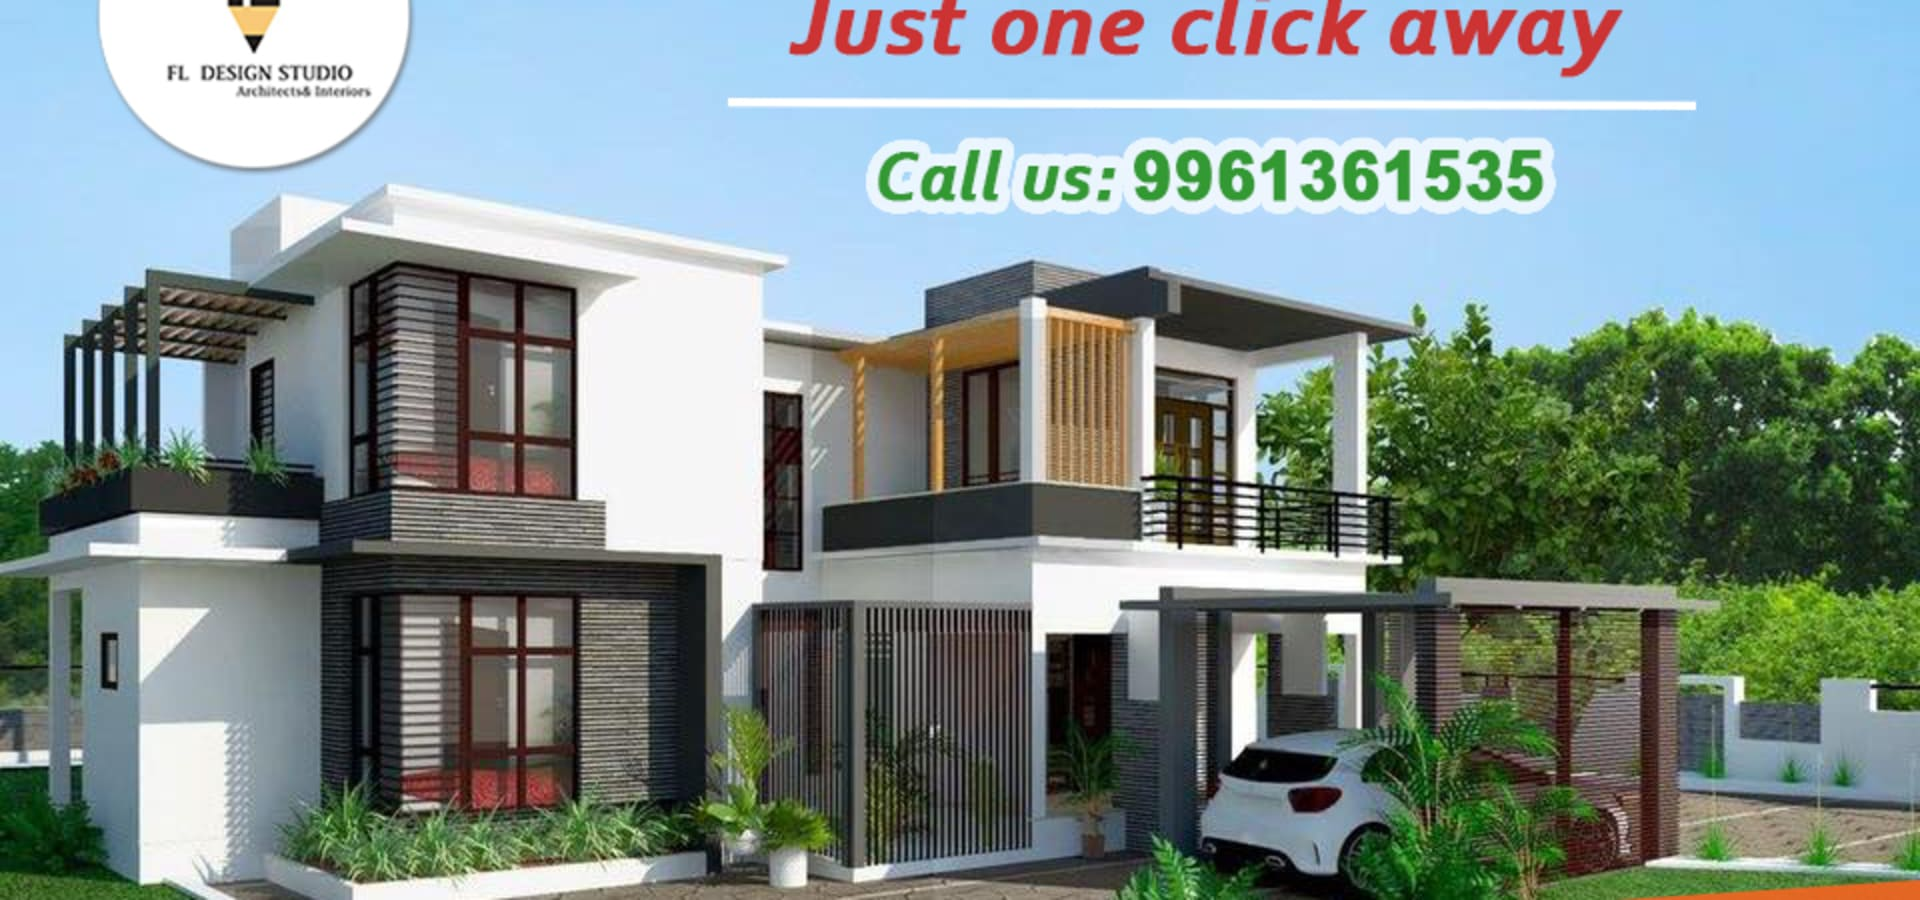 FL Design Studio | Fastline projects pvt ltd